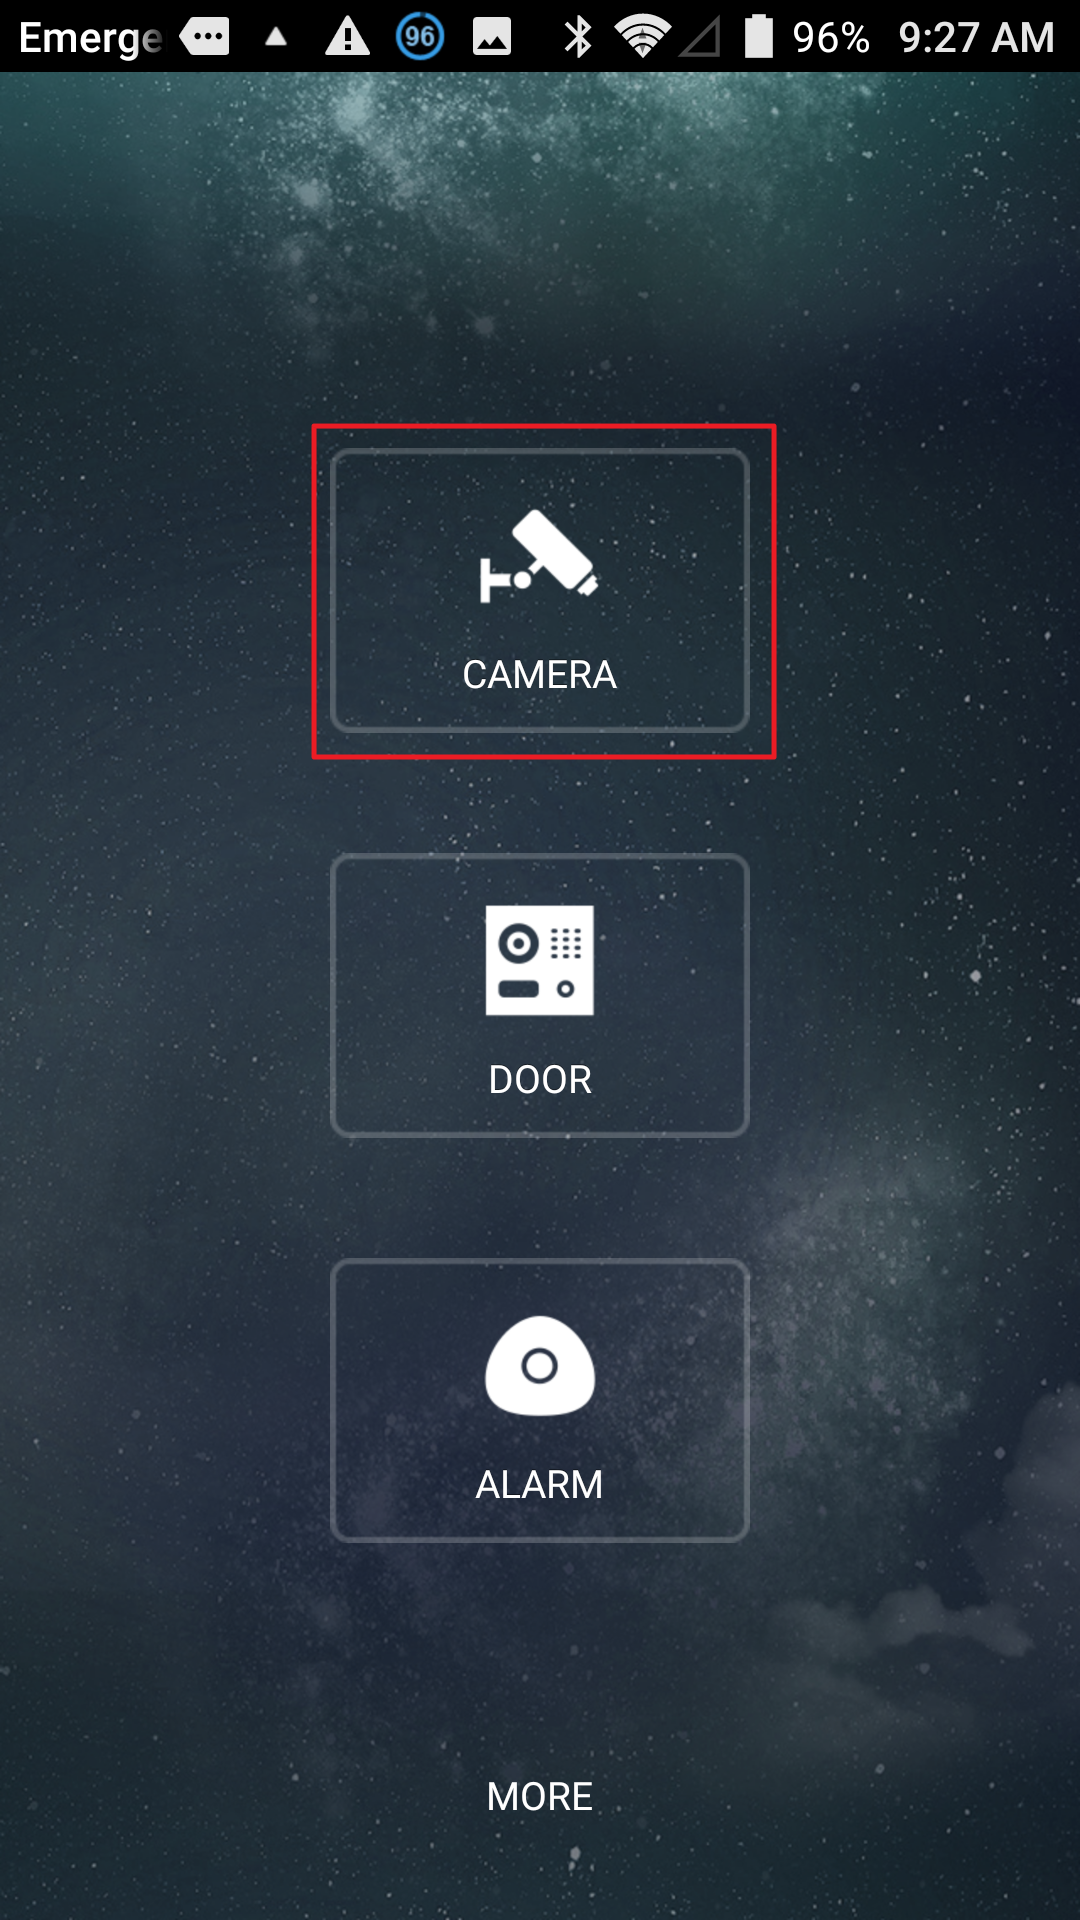 Setup gDMSS App for Android Devices to View iMaxCamPro